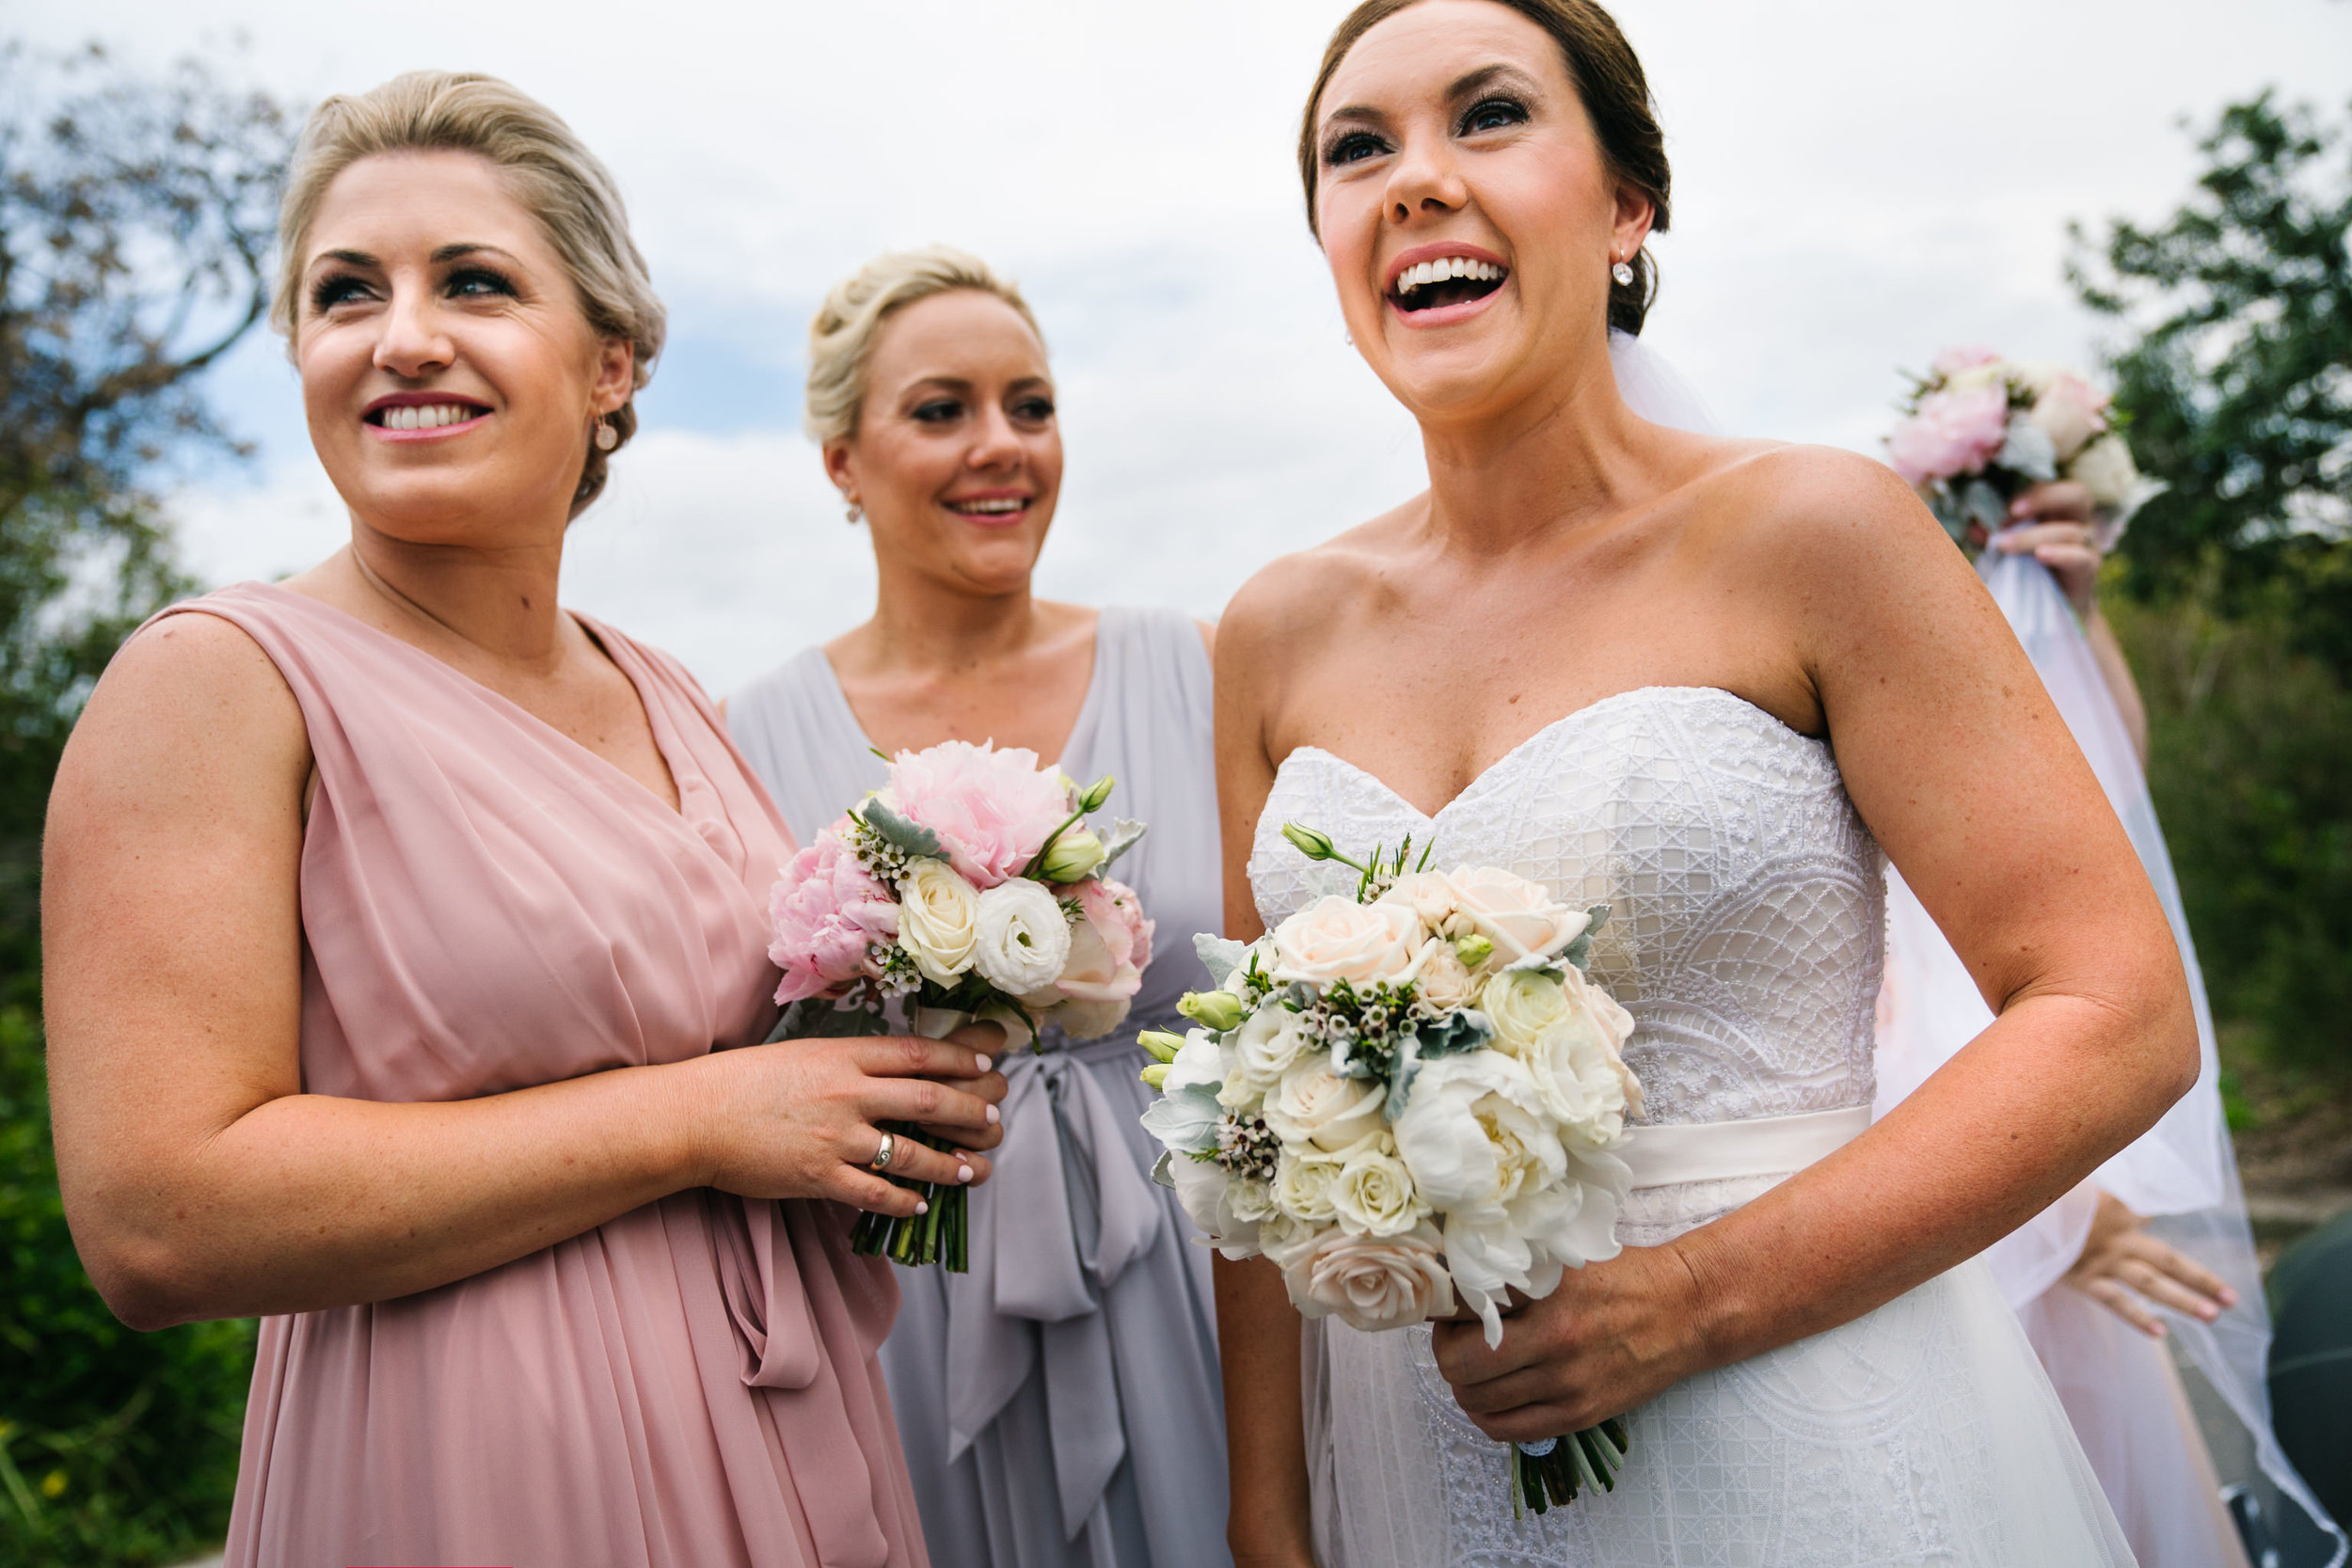 Bride laughing with bridesmaids before wedding ceremony at Shelly Beach